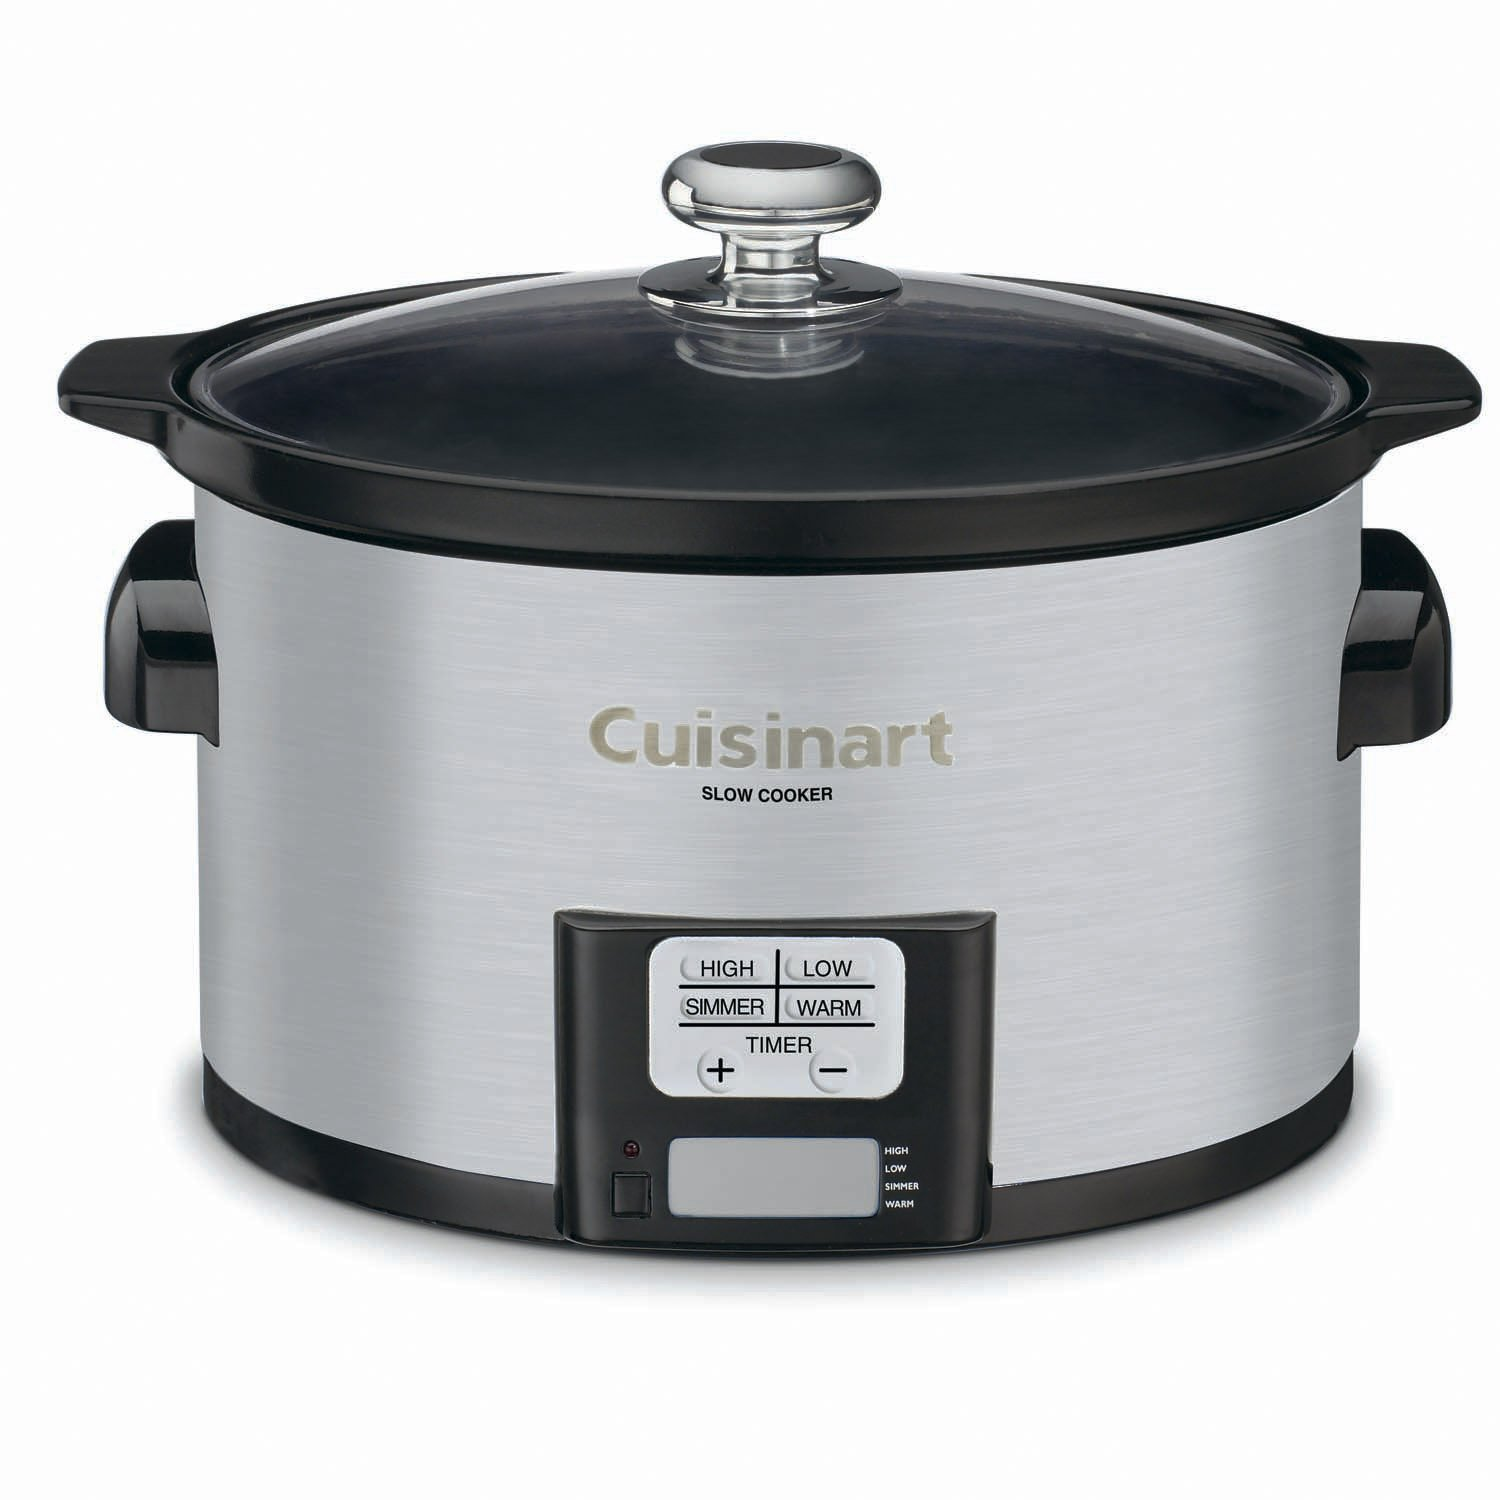 Cuisinart 3.5-qt. Programmable Slow Cooker